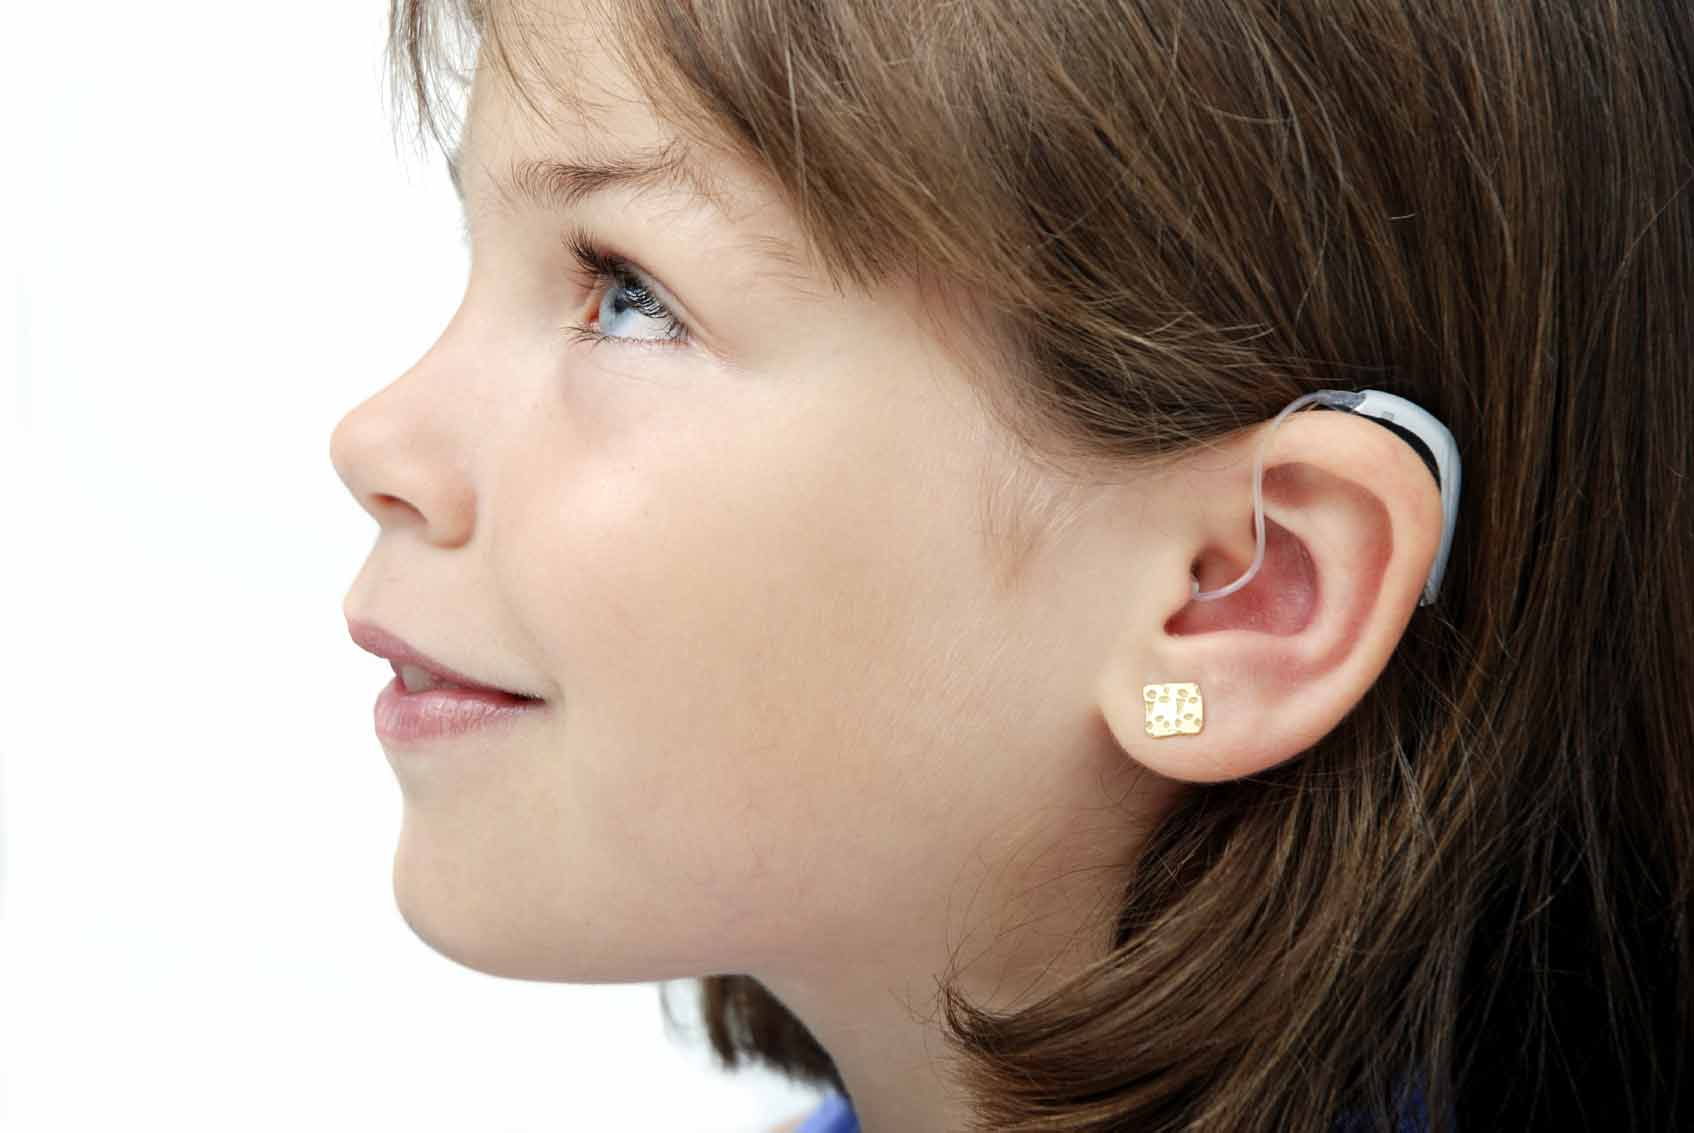 Aparatos Auditivos Assistive Listening Devices Hearing Aids Cochlear